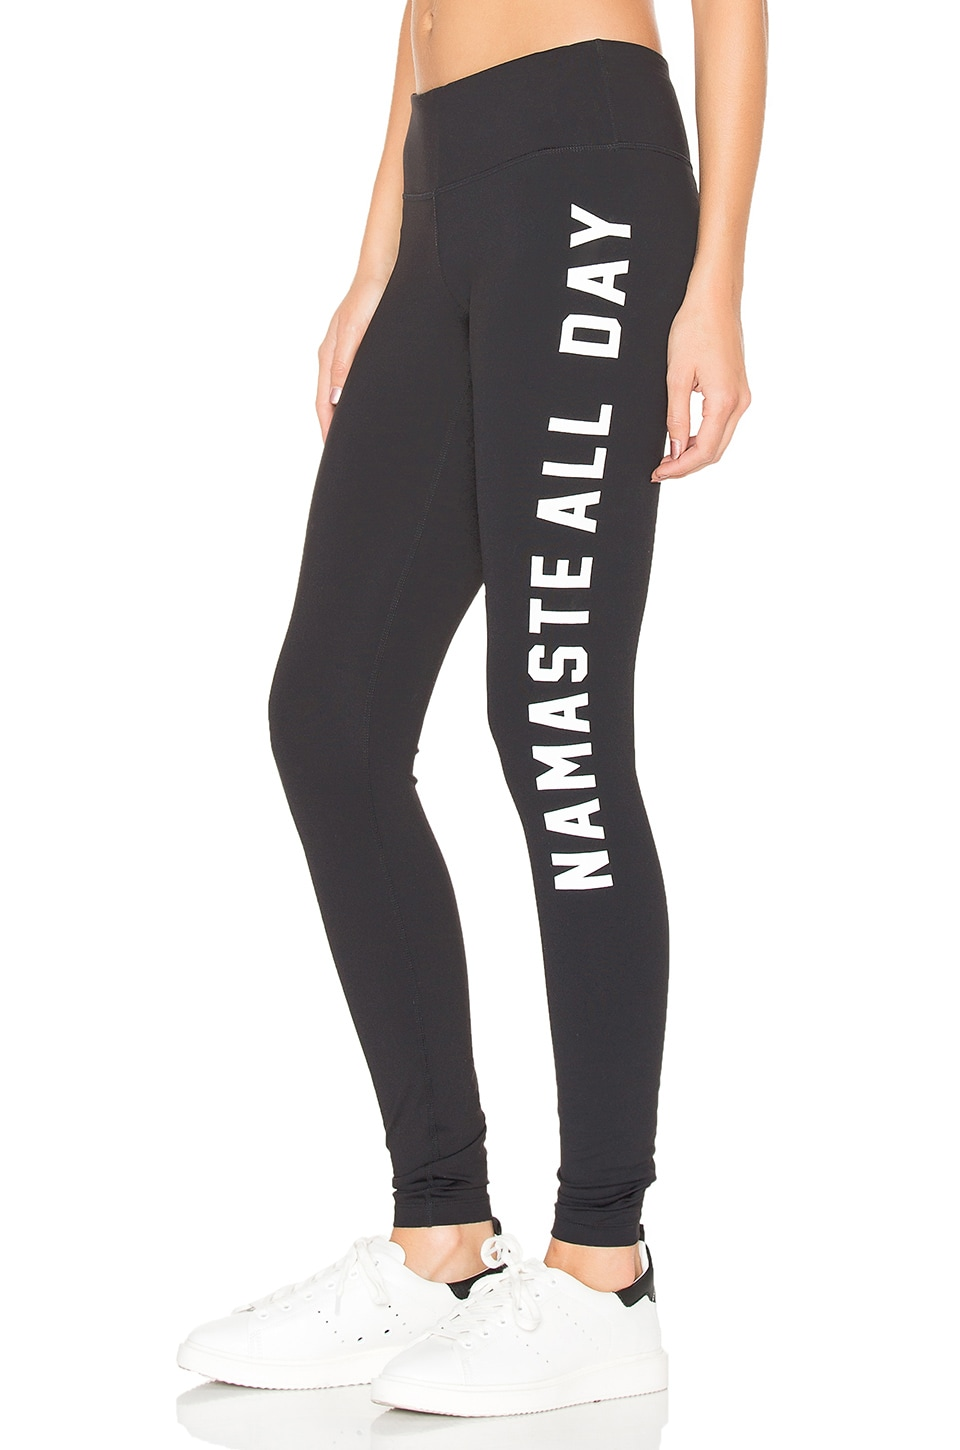 Namaste All Day Legging by Spiritual Gangster